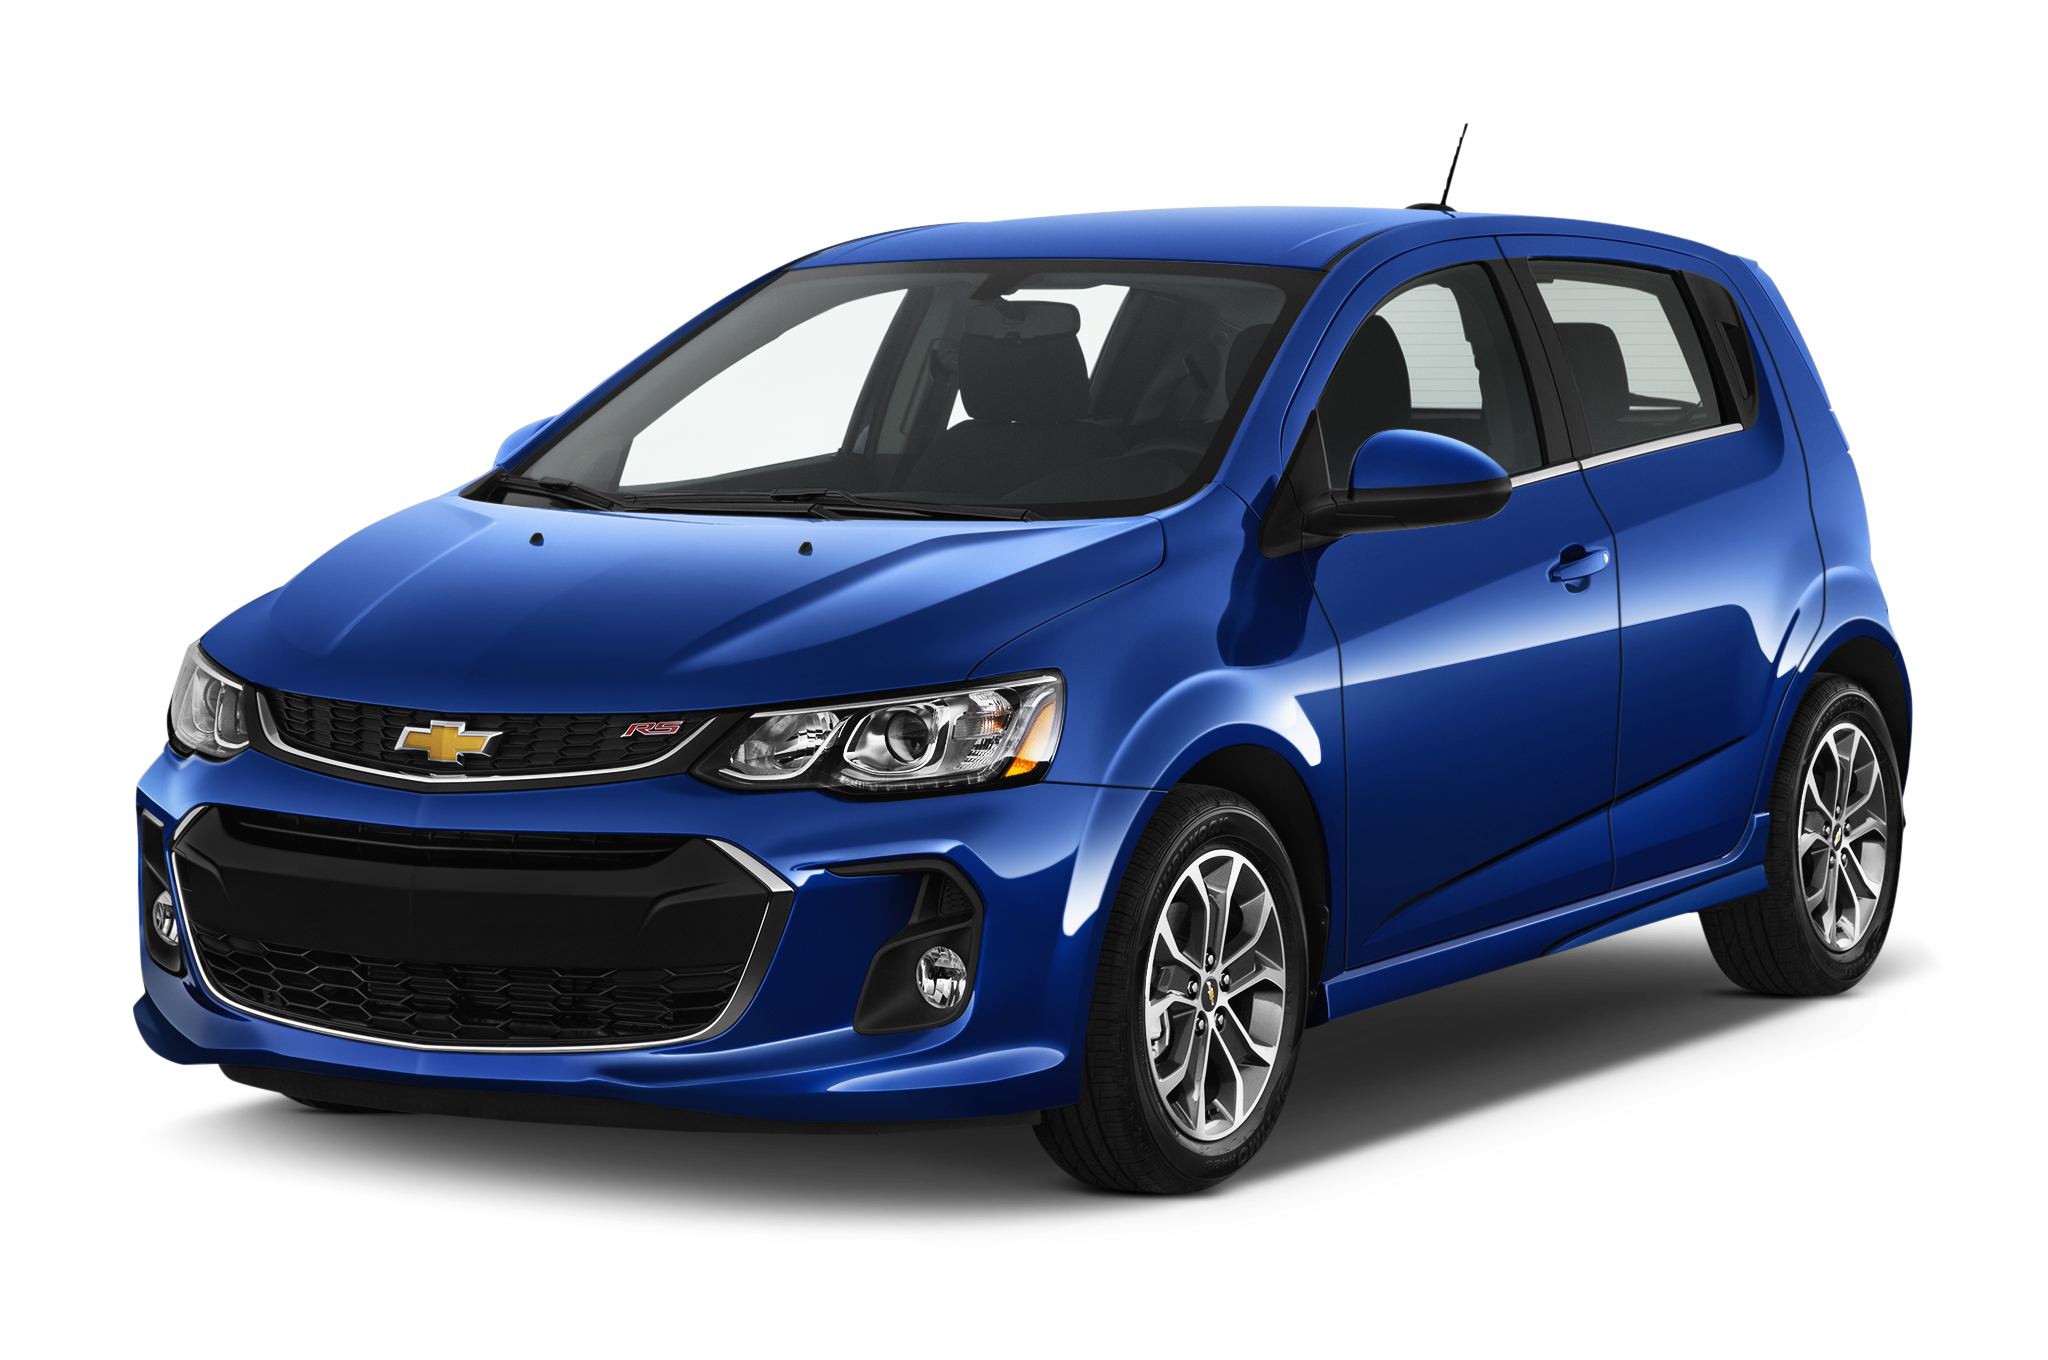 New 2017 Chevy Sonic